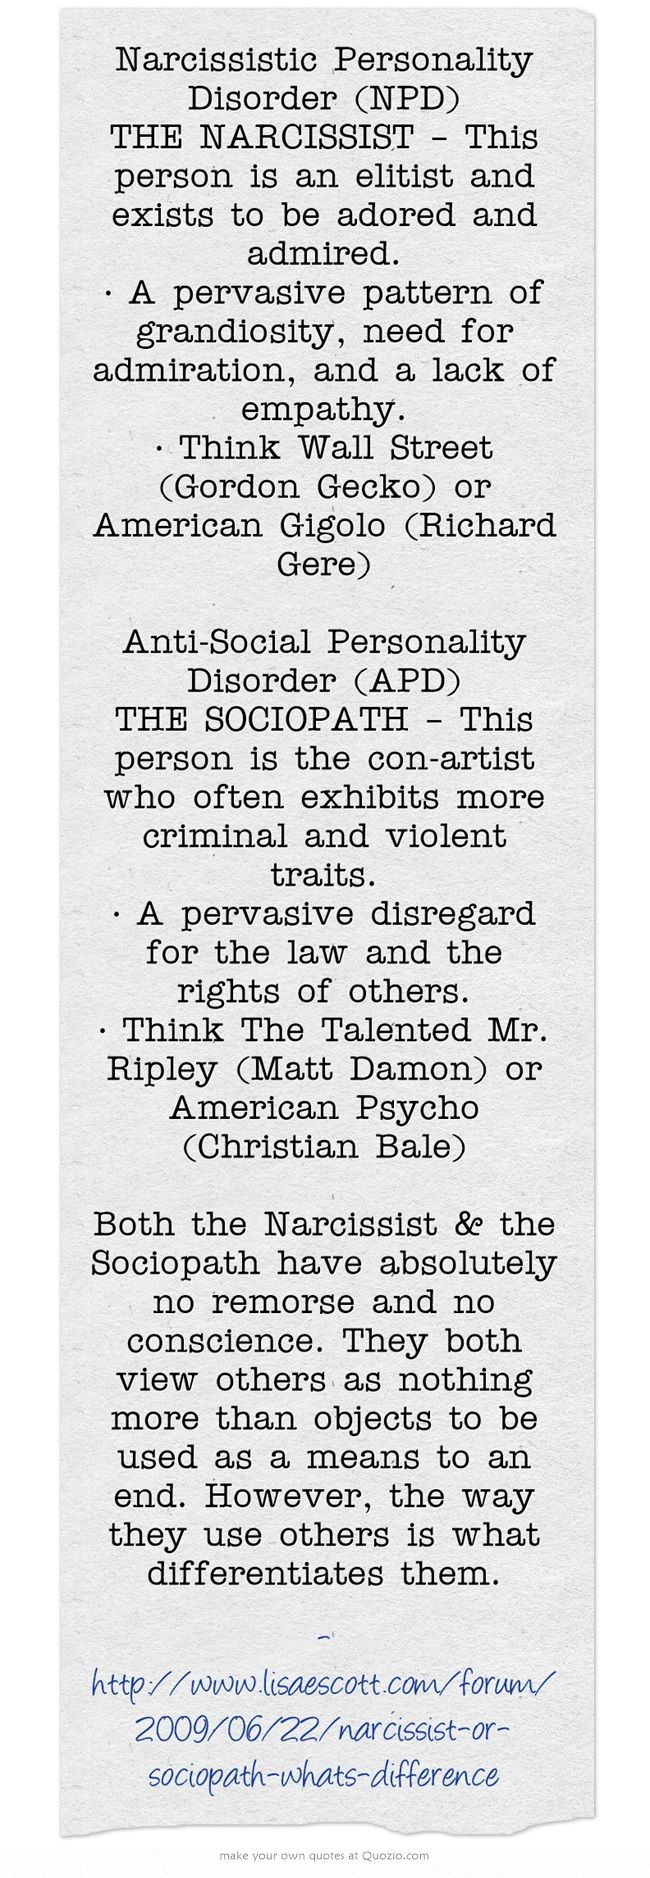 Narcissistic Personality Disorder (NPD) THE NARCISSIST – This person is an elitist and exists to be adored and admired. • A pervasive pattern of grandiosity, need for admiration, and a lack of empathy. • Think Wall Street (Gordon Gecko) or American Gigolo (Richard Gere) Anti-Social Personality Disorder (APD) THE SOCIOPATH – This person is the con-artist who often exhibits more criminal and violent traits. • A pervasive disregard for the law and the rights of others. • Think...